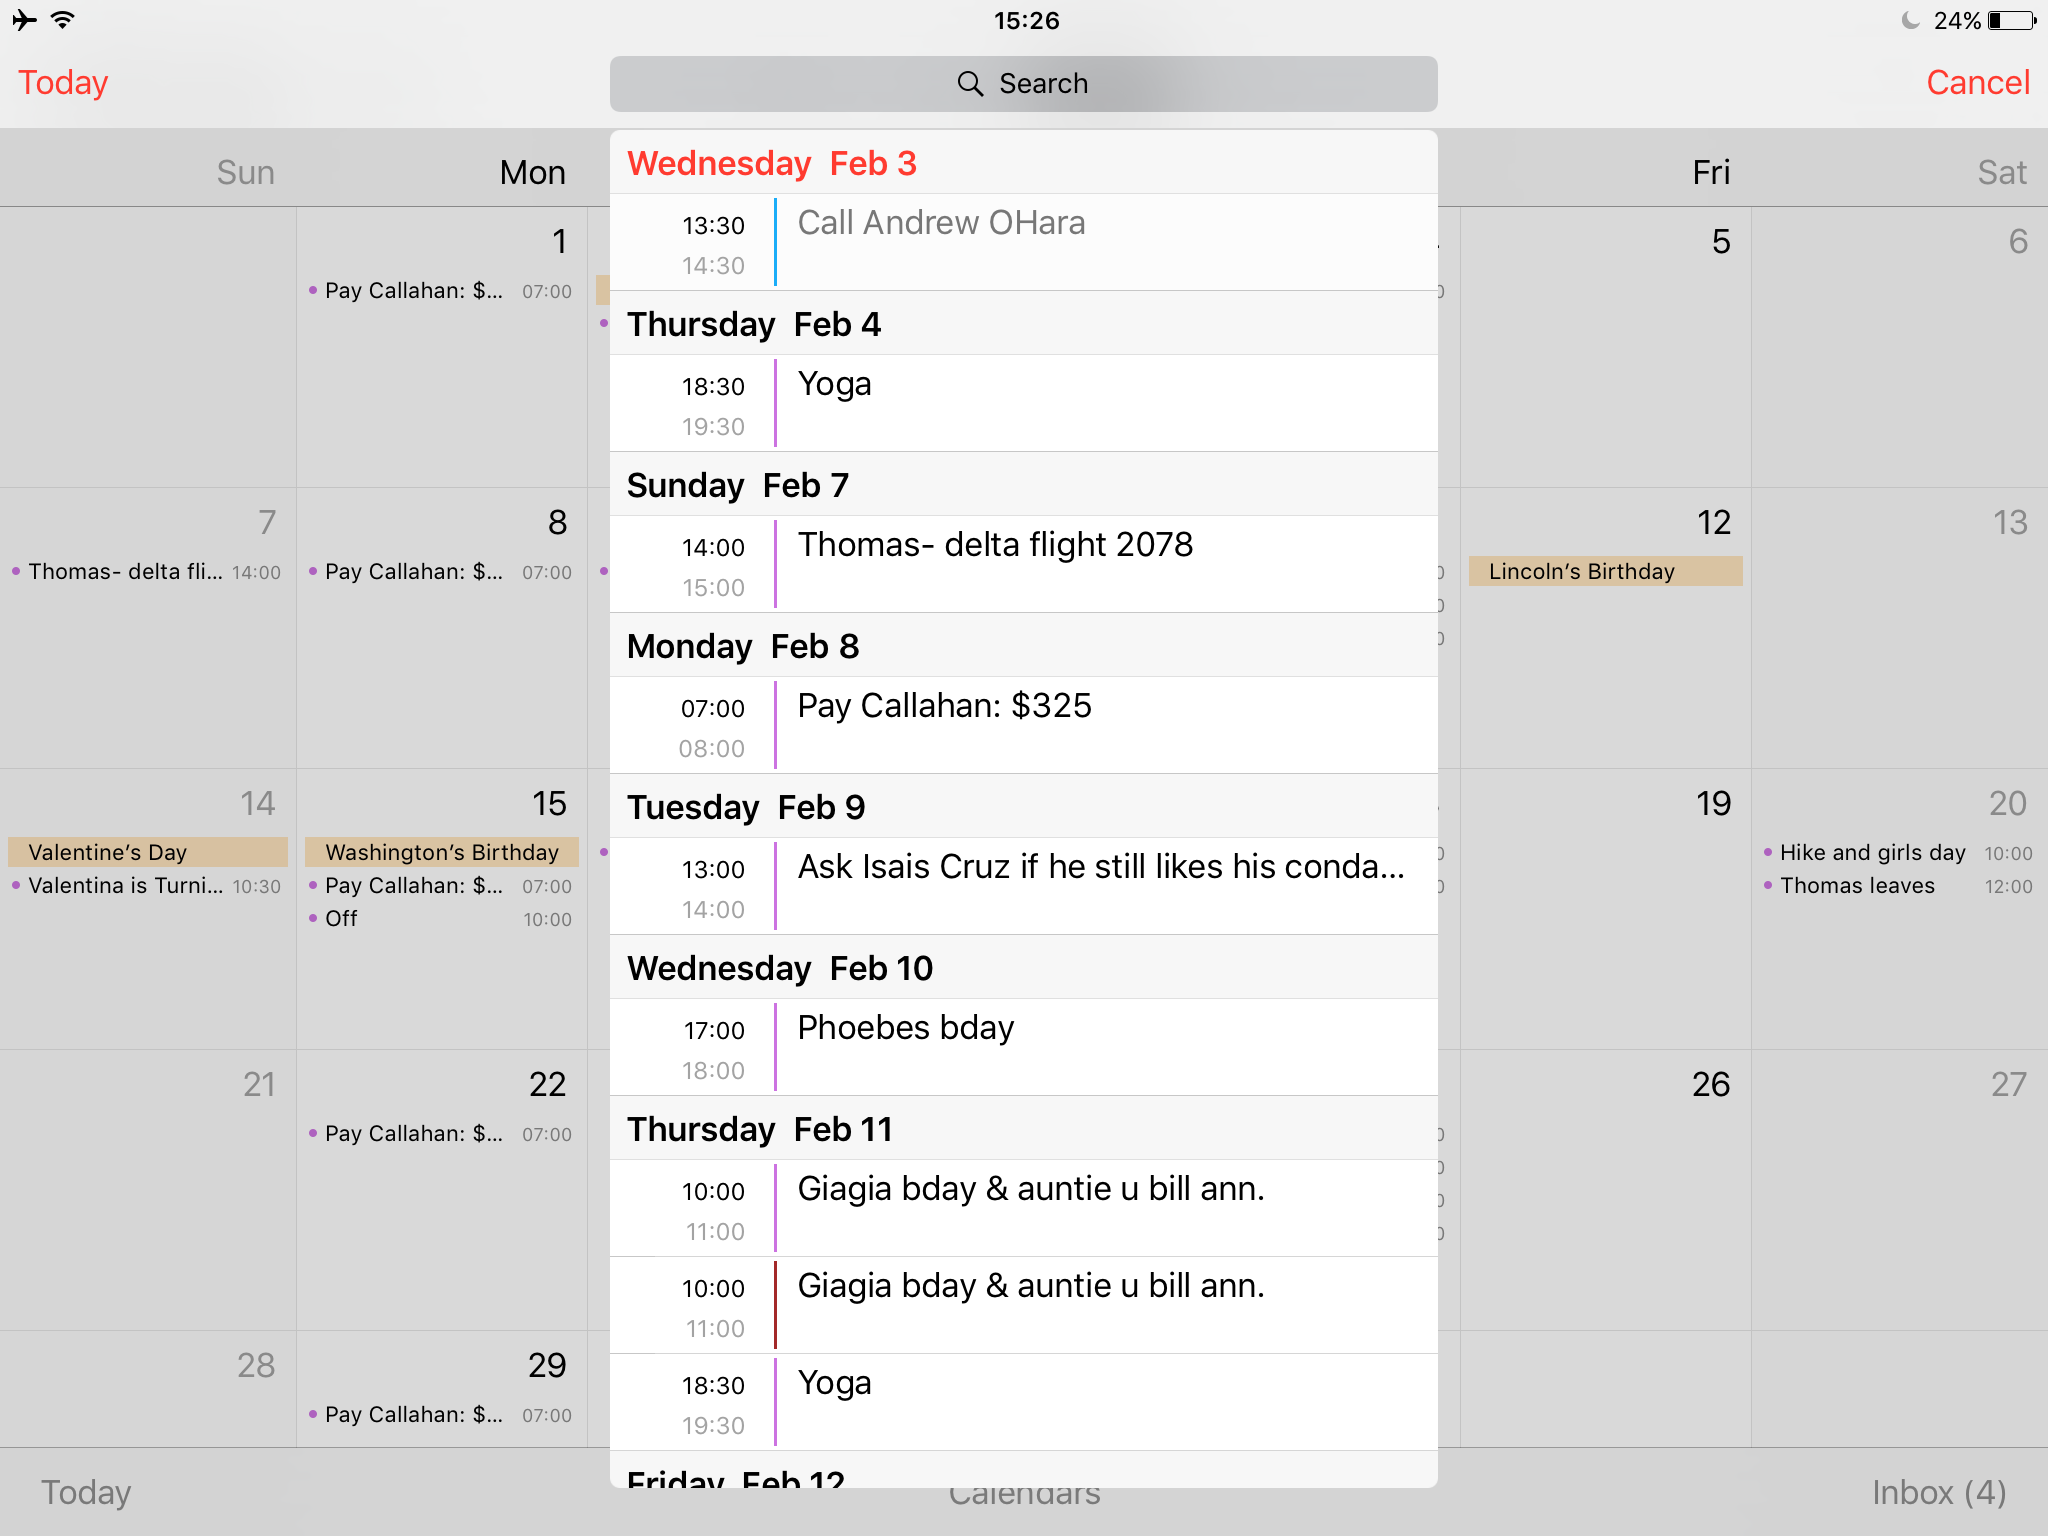 ipad calendar list view